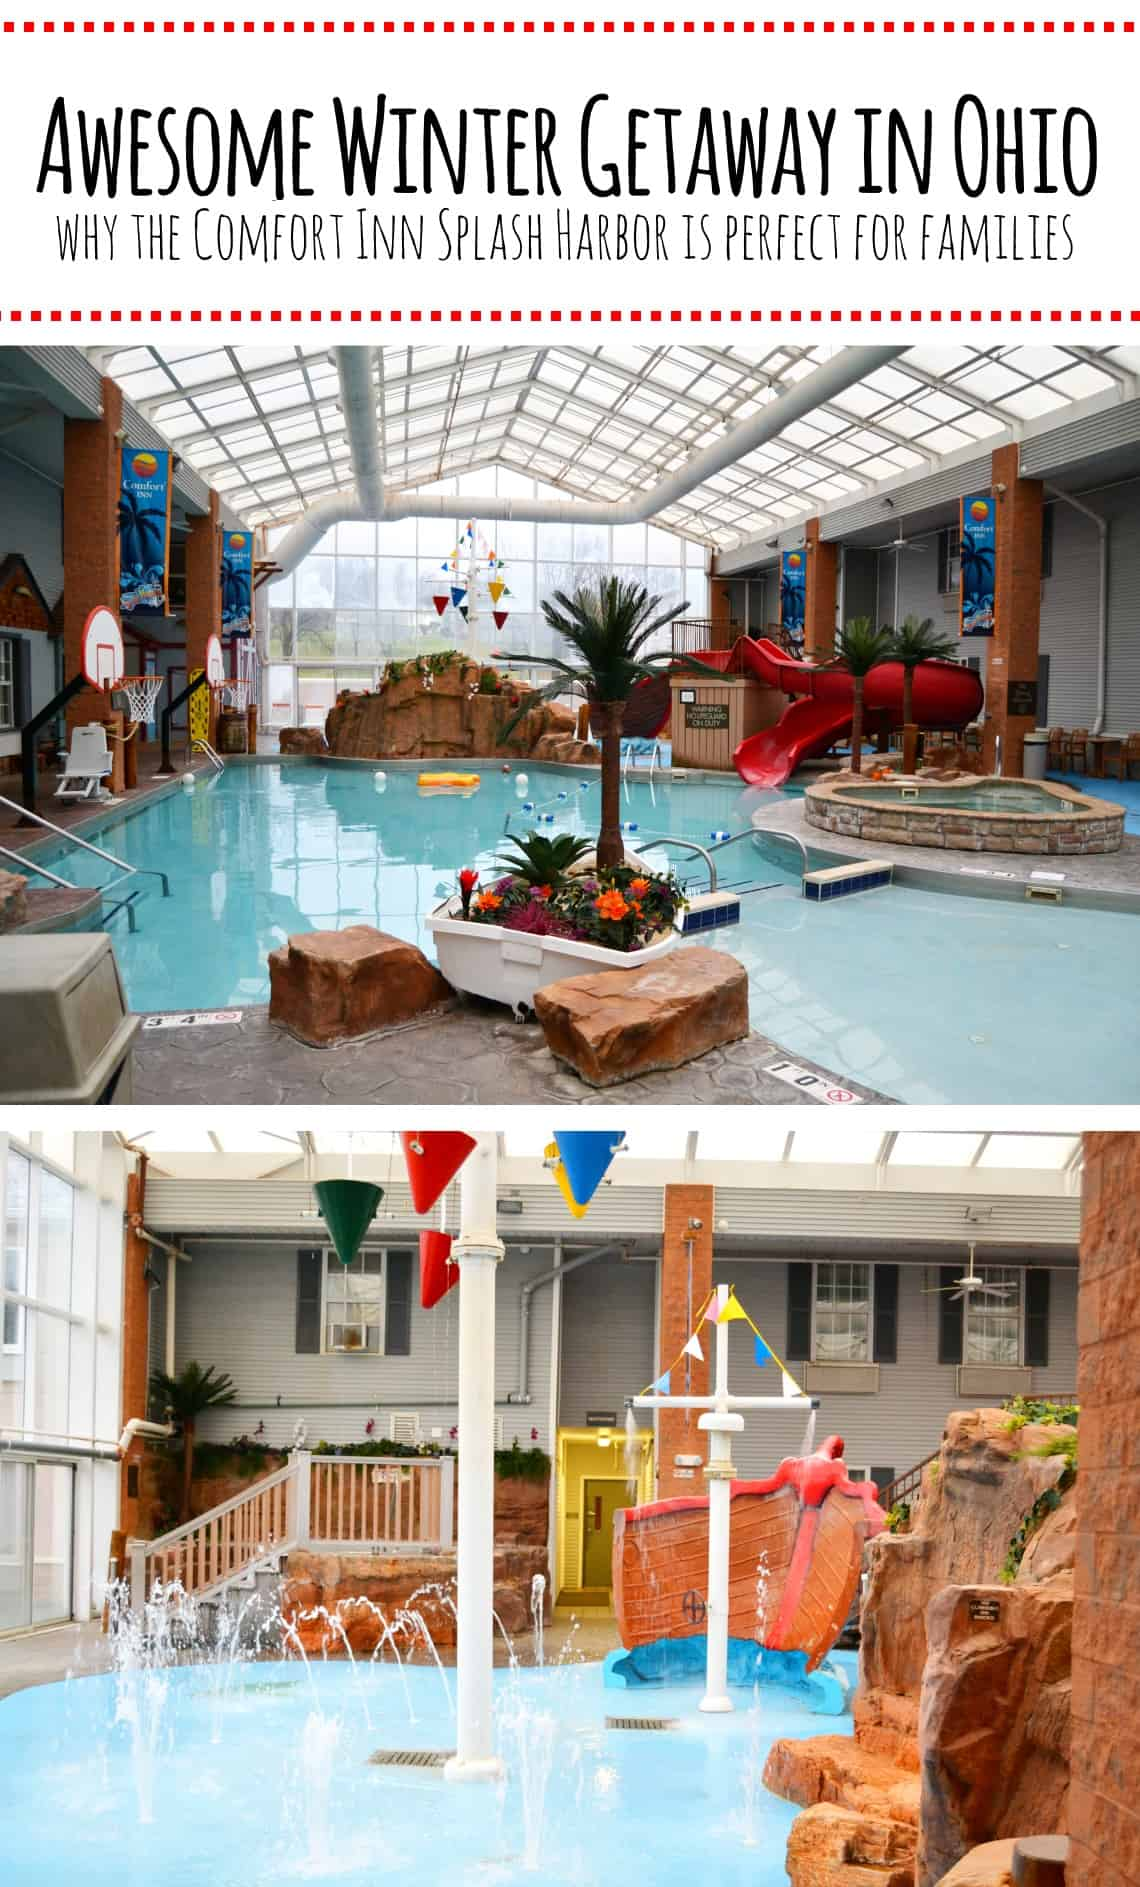 The perfect winter getaway in Ohio for families is the Comfort Inn Splash Harbor. Check out the full blog post for why our family loved it and a full review.